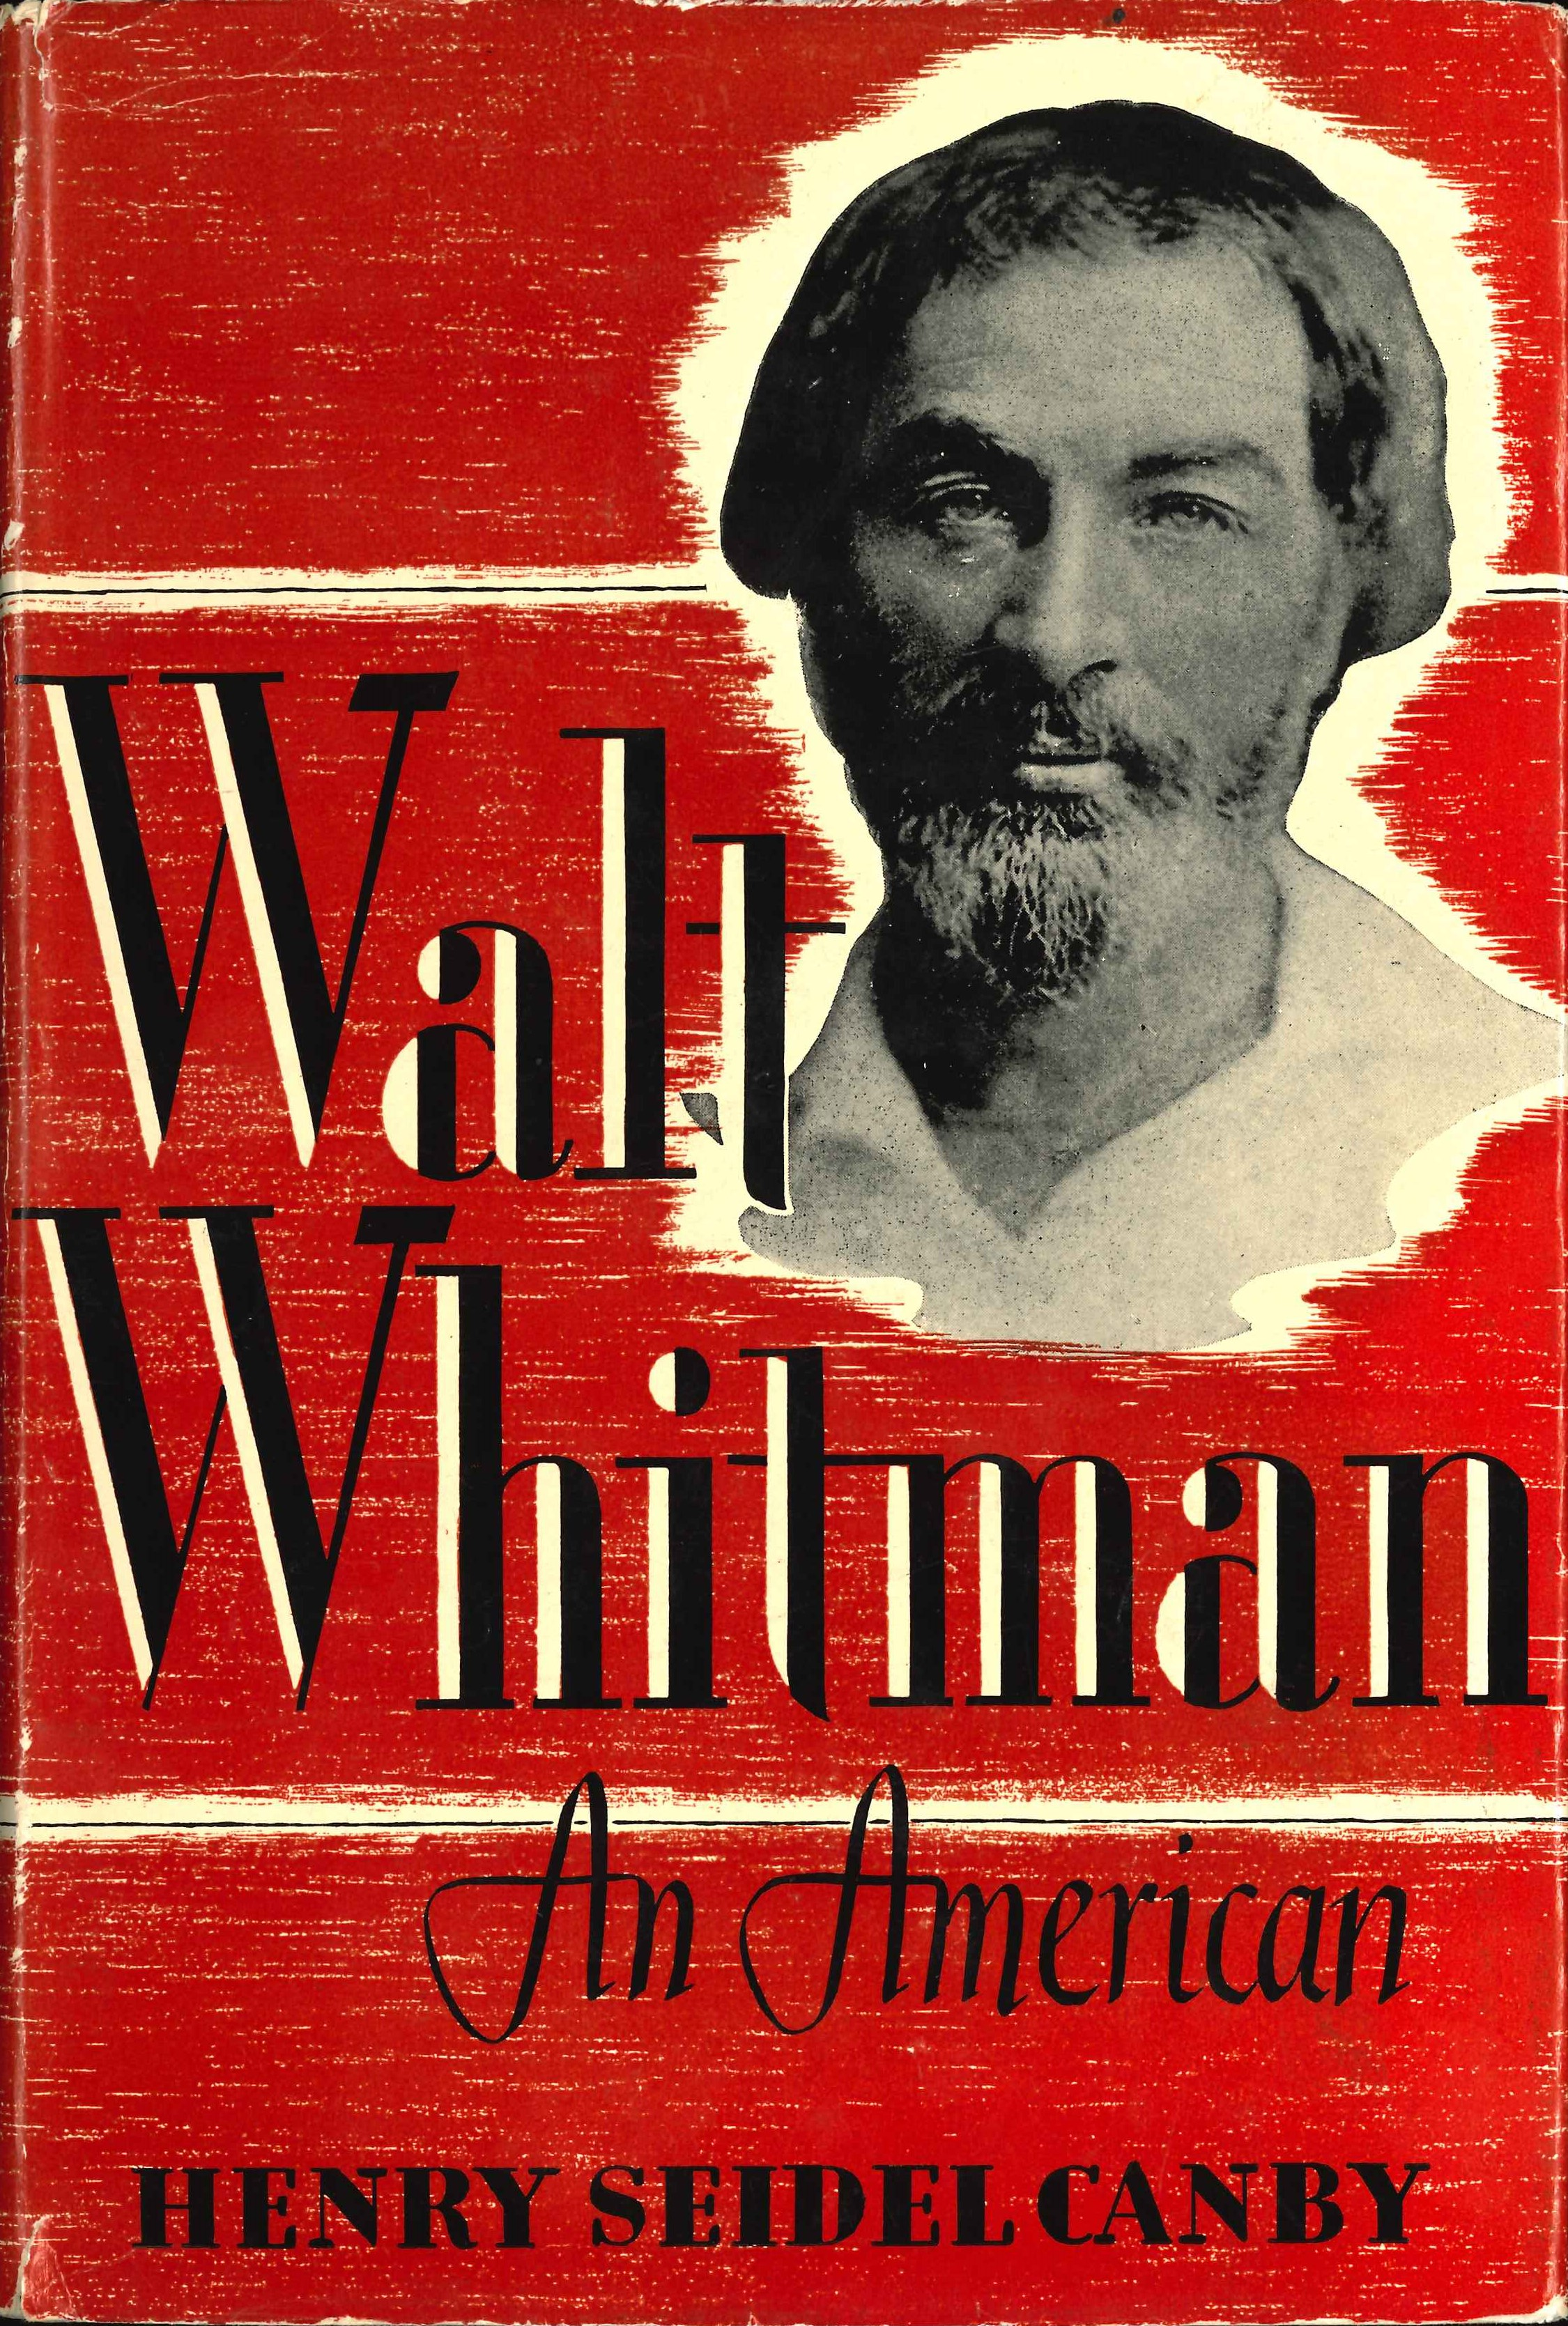 Henry Seidel Canby. Walt Whitman: An American; A Study in Biography. Boston: Houghton Mifflin, 1943.